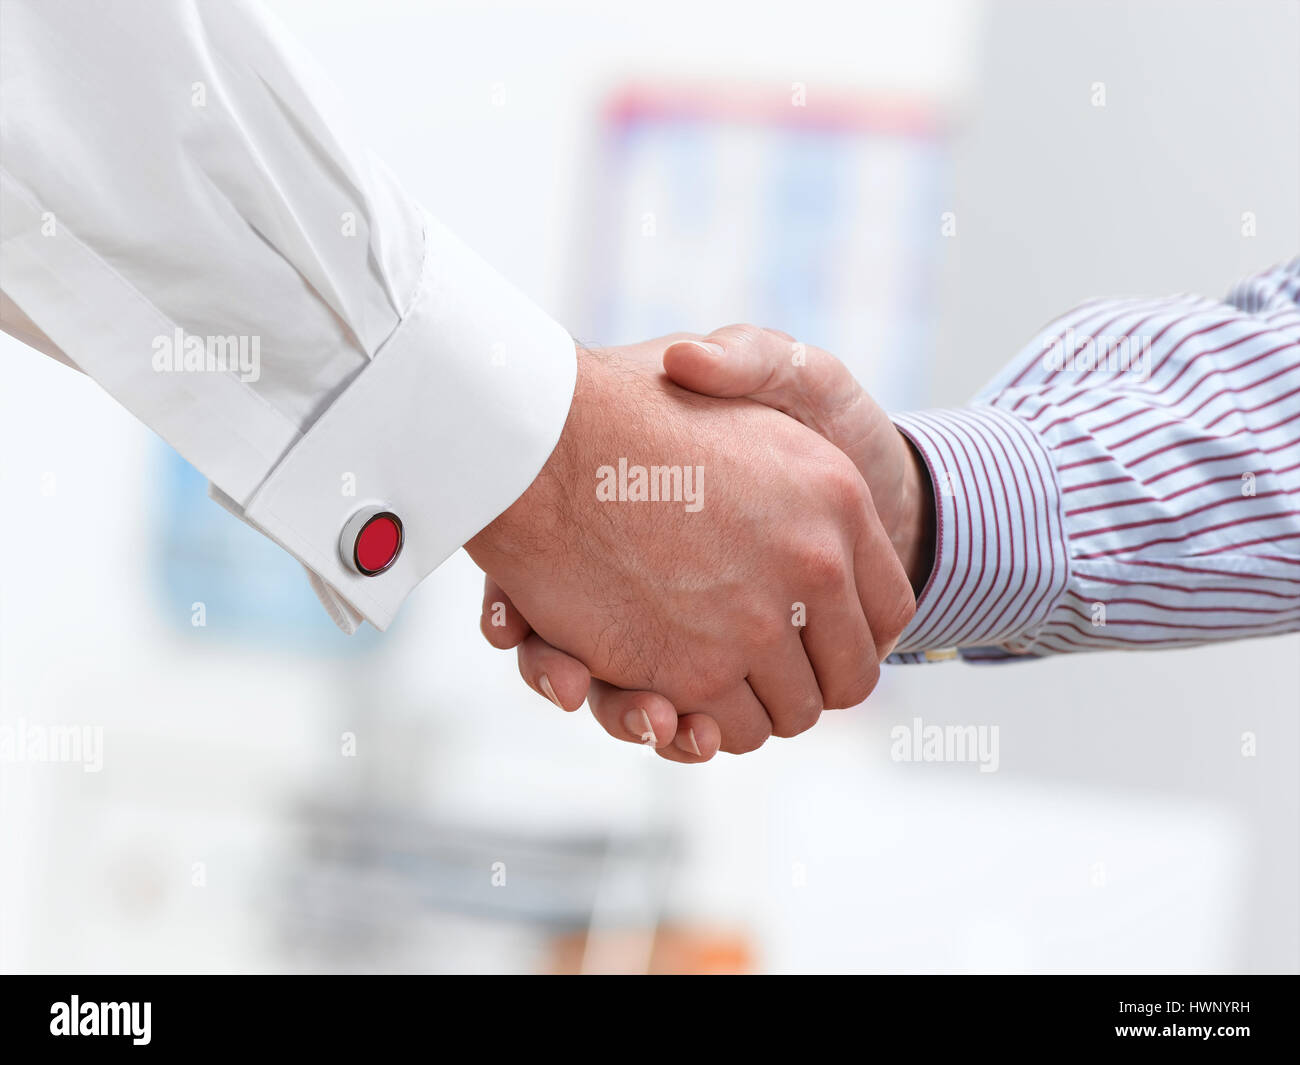 Hands Handshake Commerce Meeting Greeting Formal Executive Business